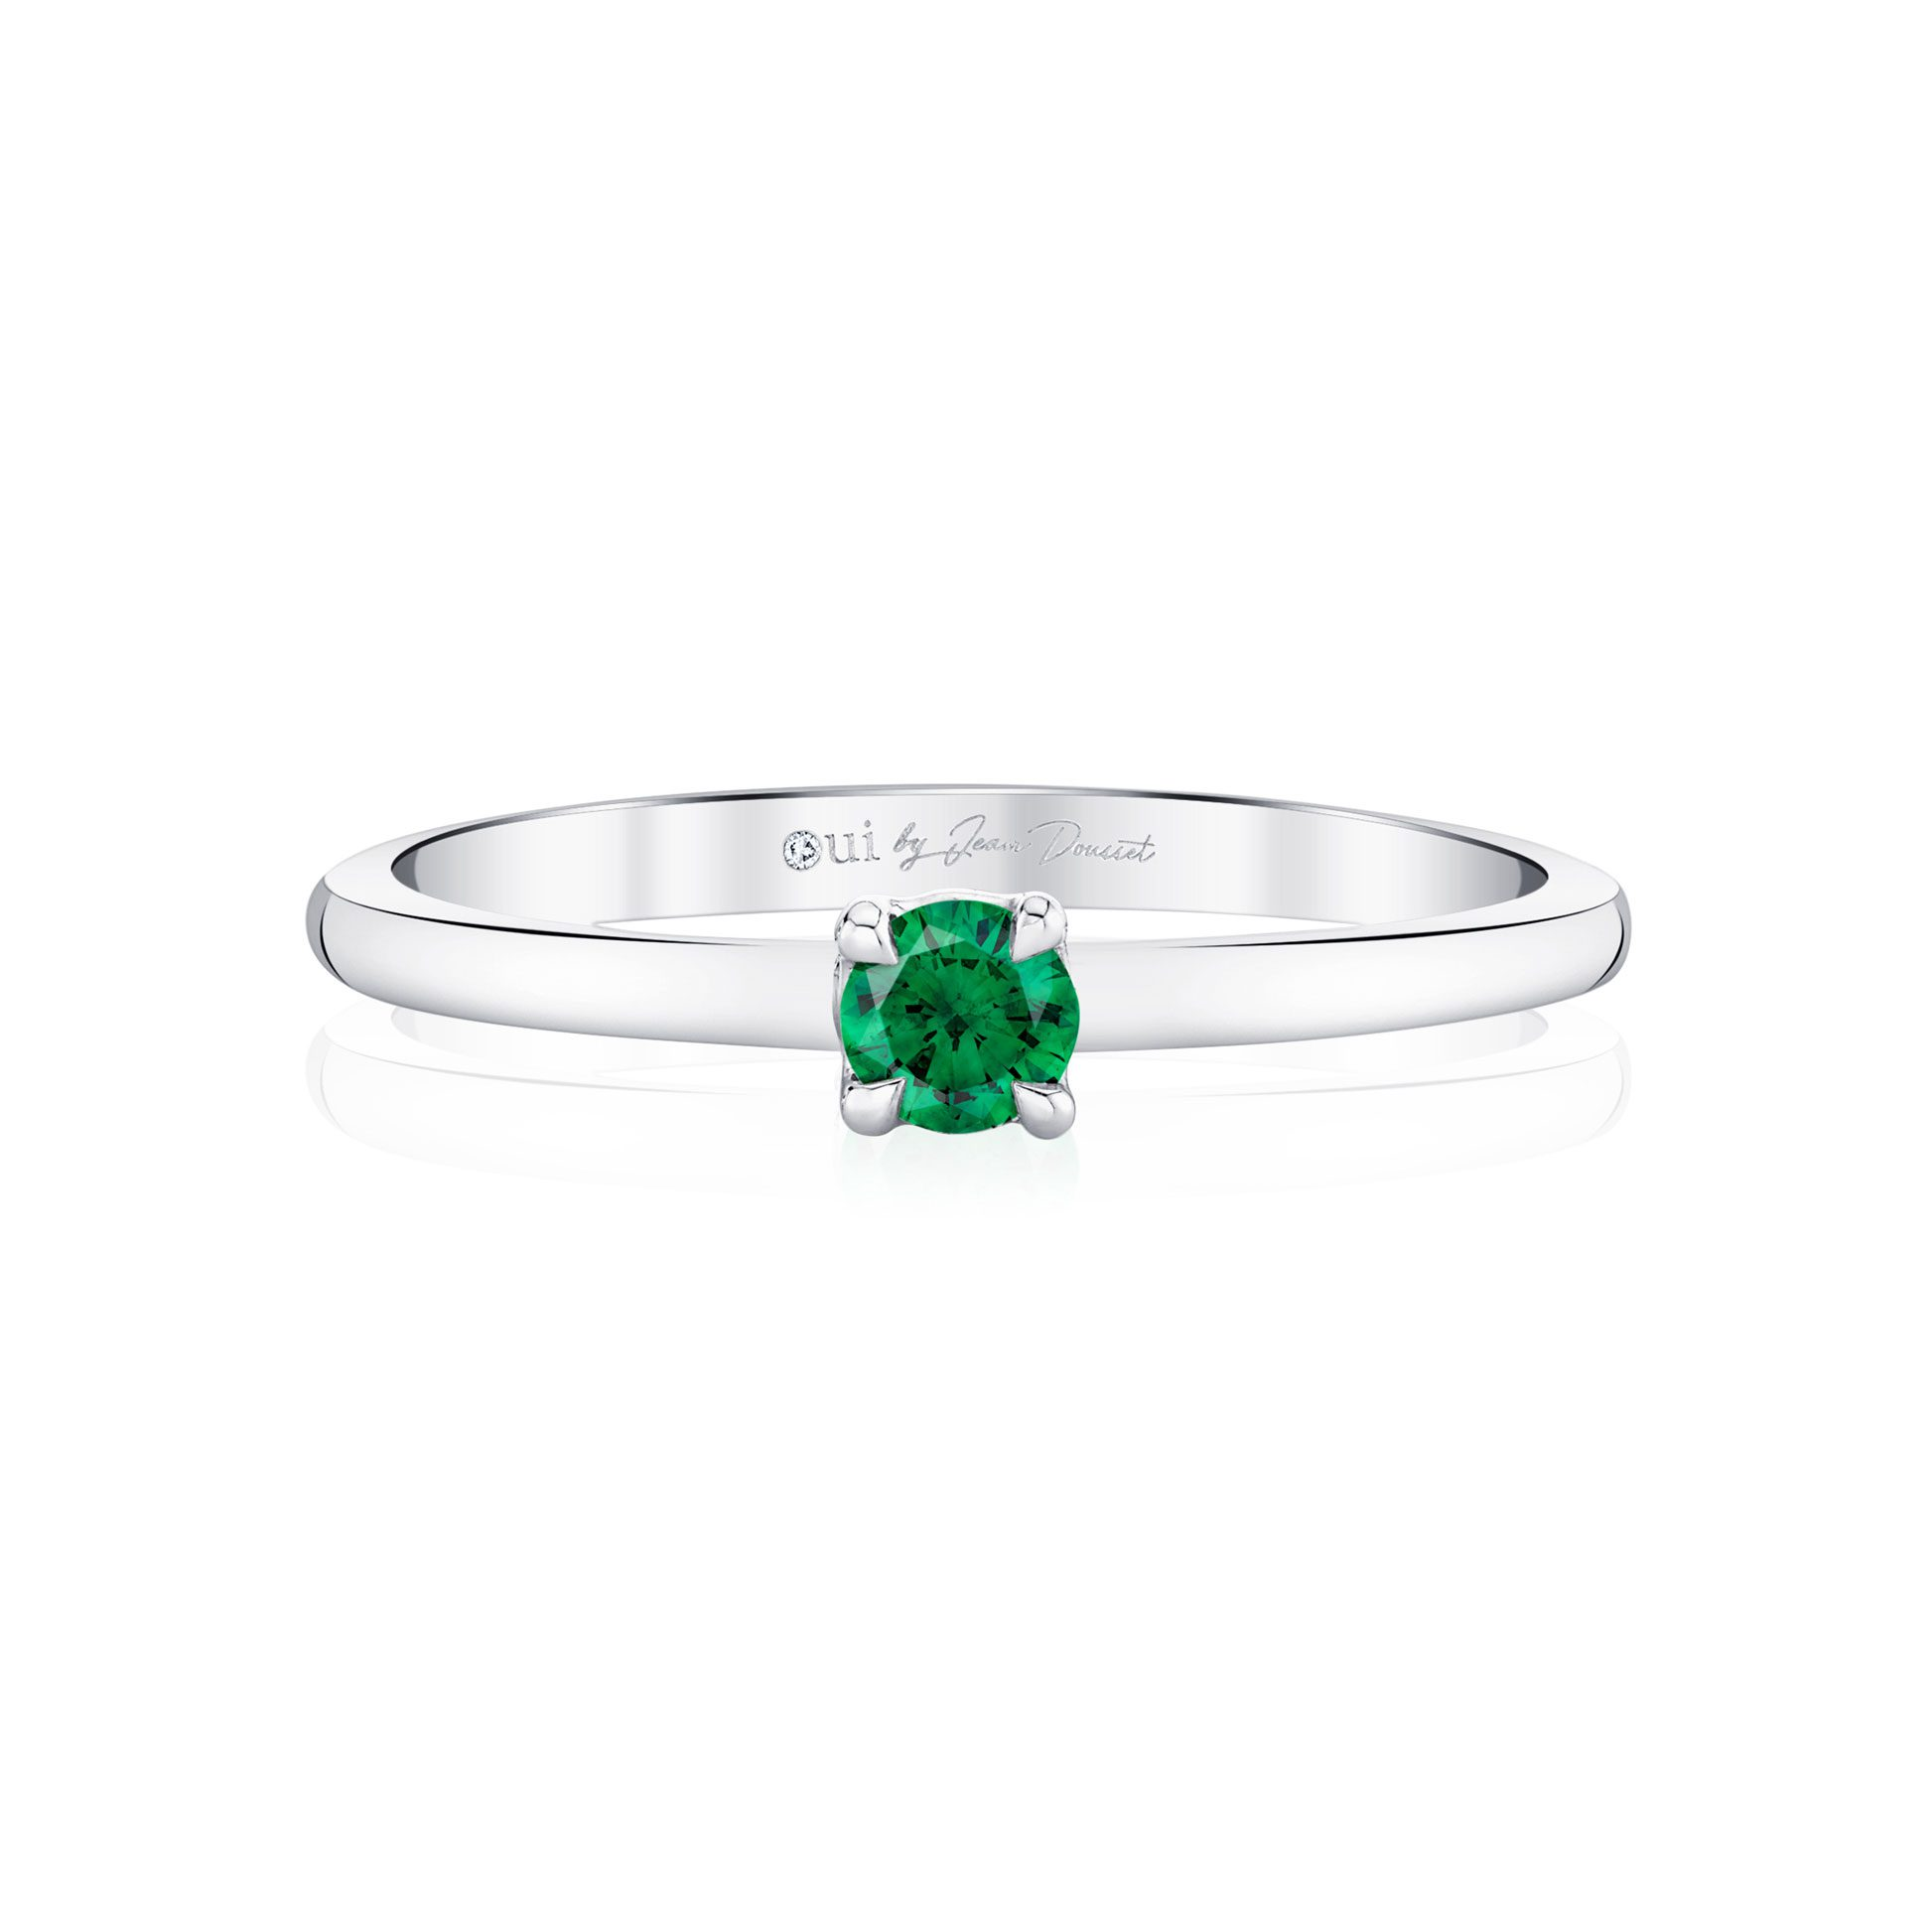 La Petite Round Brilliant Emerald Ring in 18k White Gold Front View by Oui by Jean Dousset